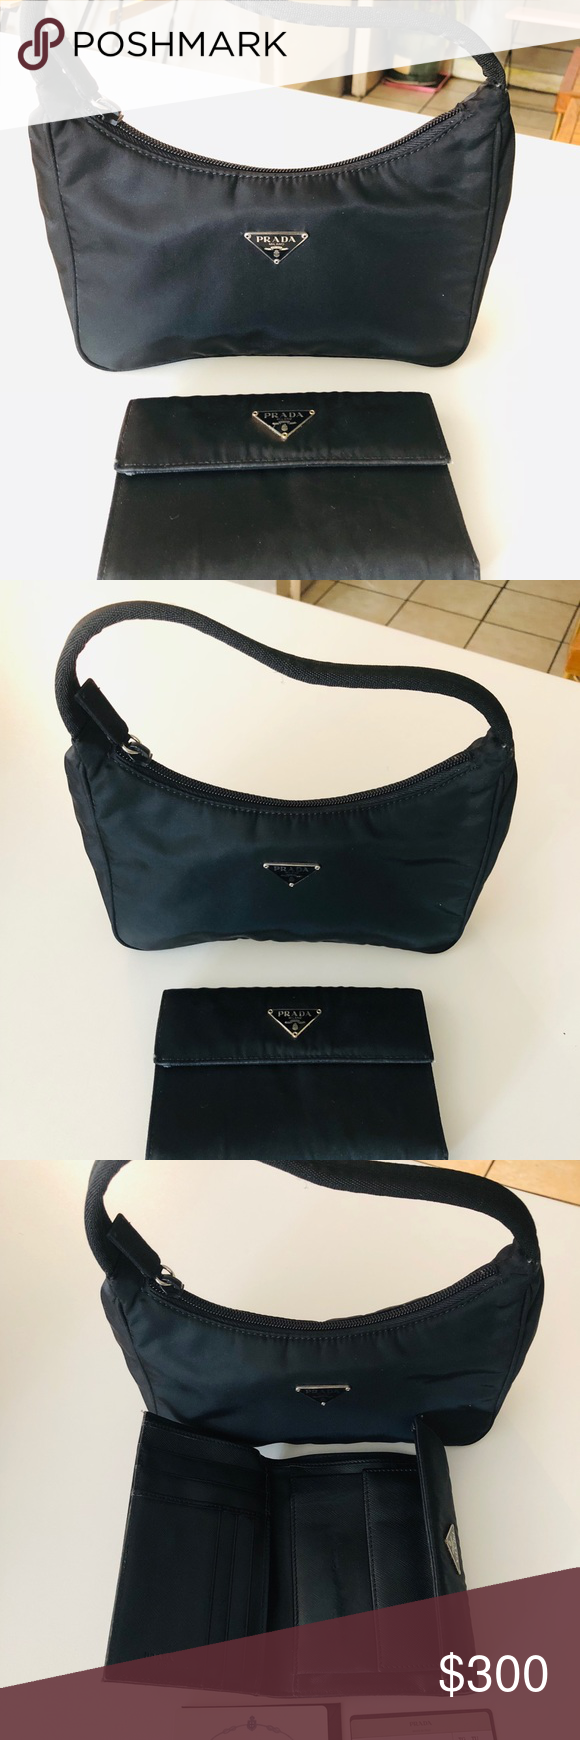 74b7a6c5d523 Authentic Prada pouch and wallet Original Prada pouch and wallet bundle!  Sign of usage but still in good condition. With serial number as well.